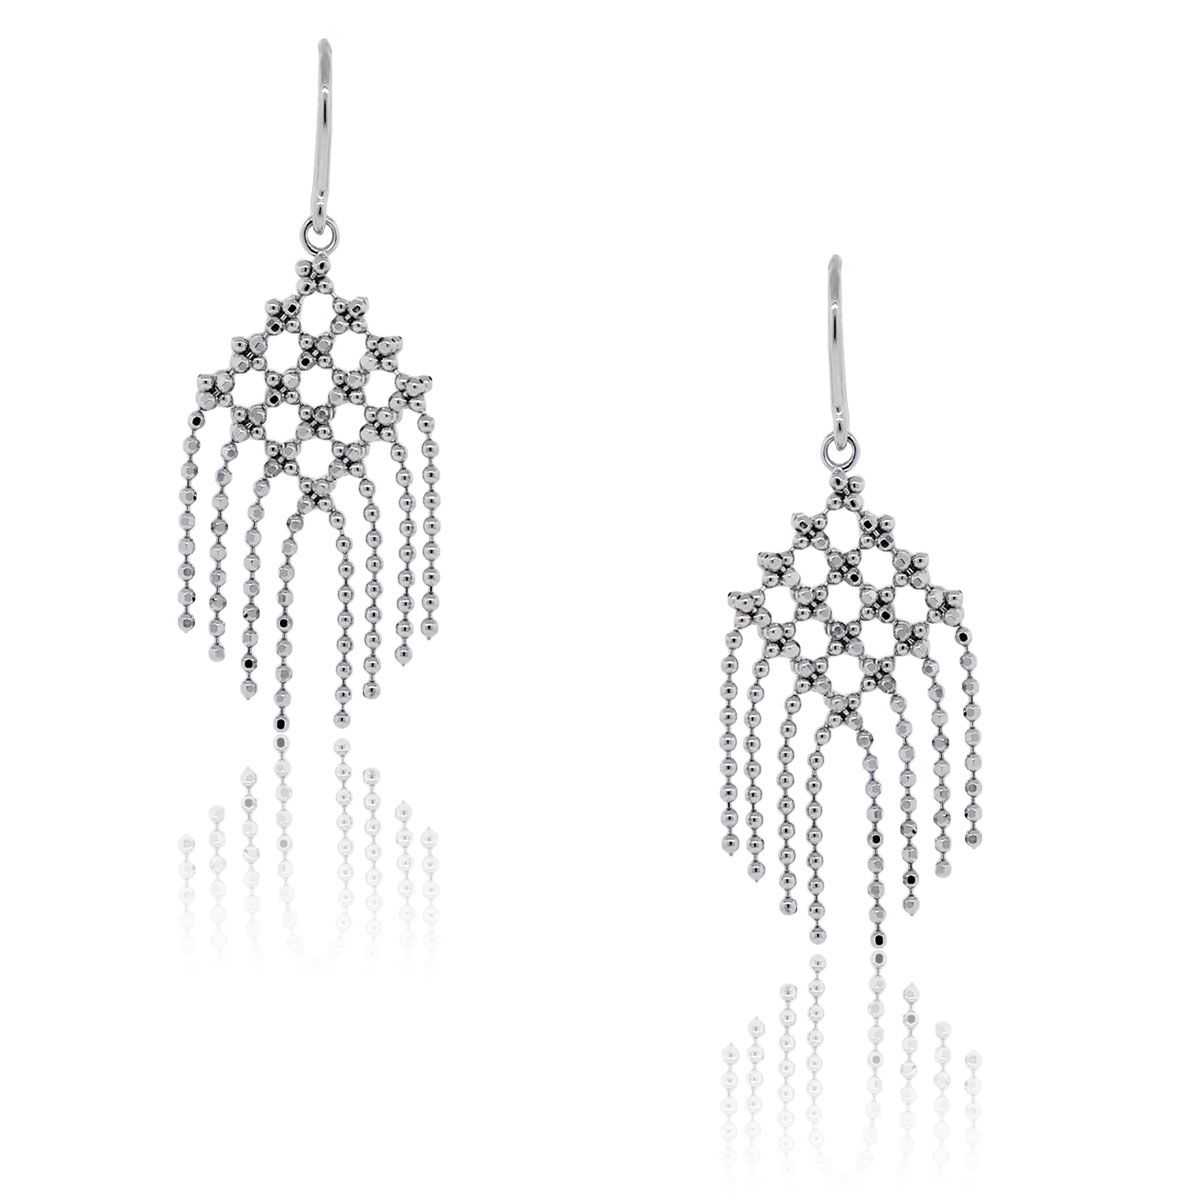 You are viewing these Tiffany & Co. 18k White Gold Fringe Flower Bead Dangle Earrings!